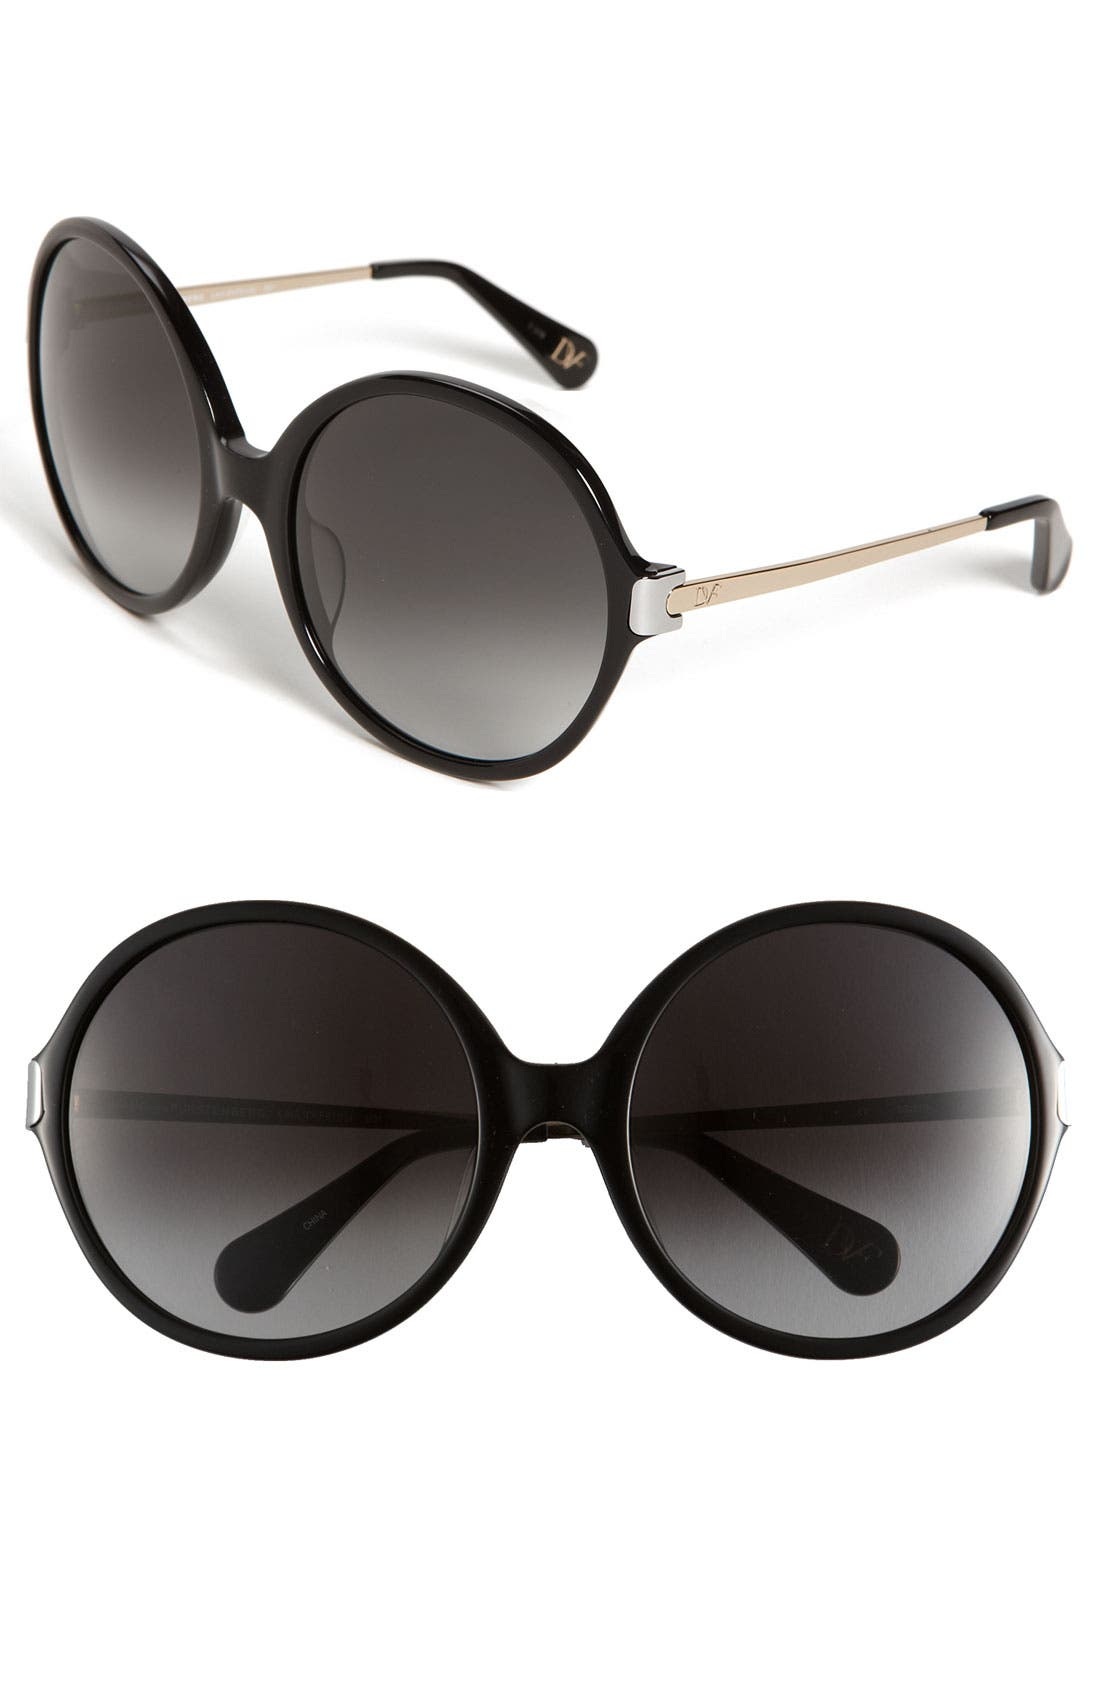 Alternate Image 1 Selected - Diane von Furstenberg 'Lais' Oversized Round Sunglasses